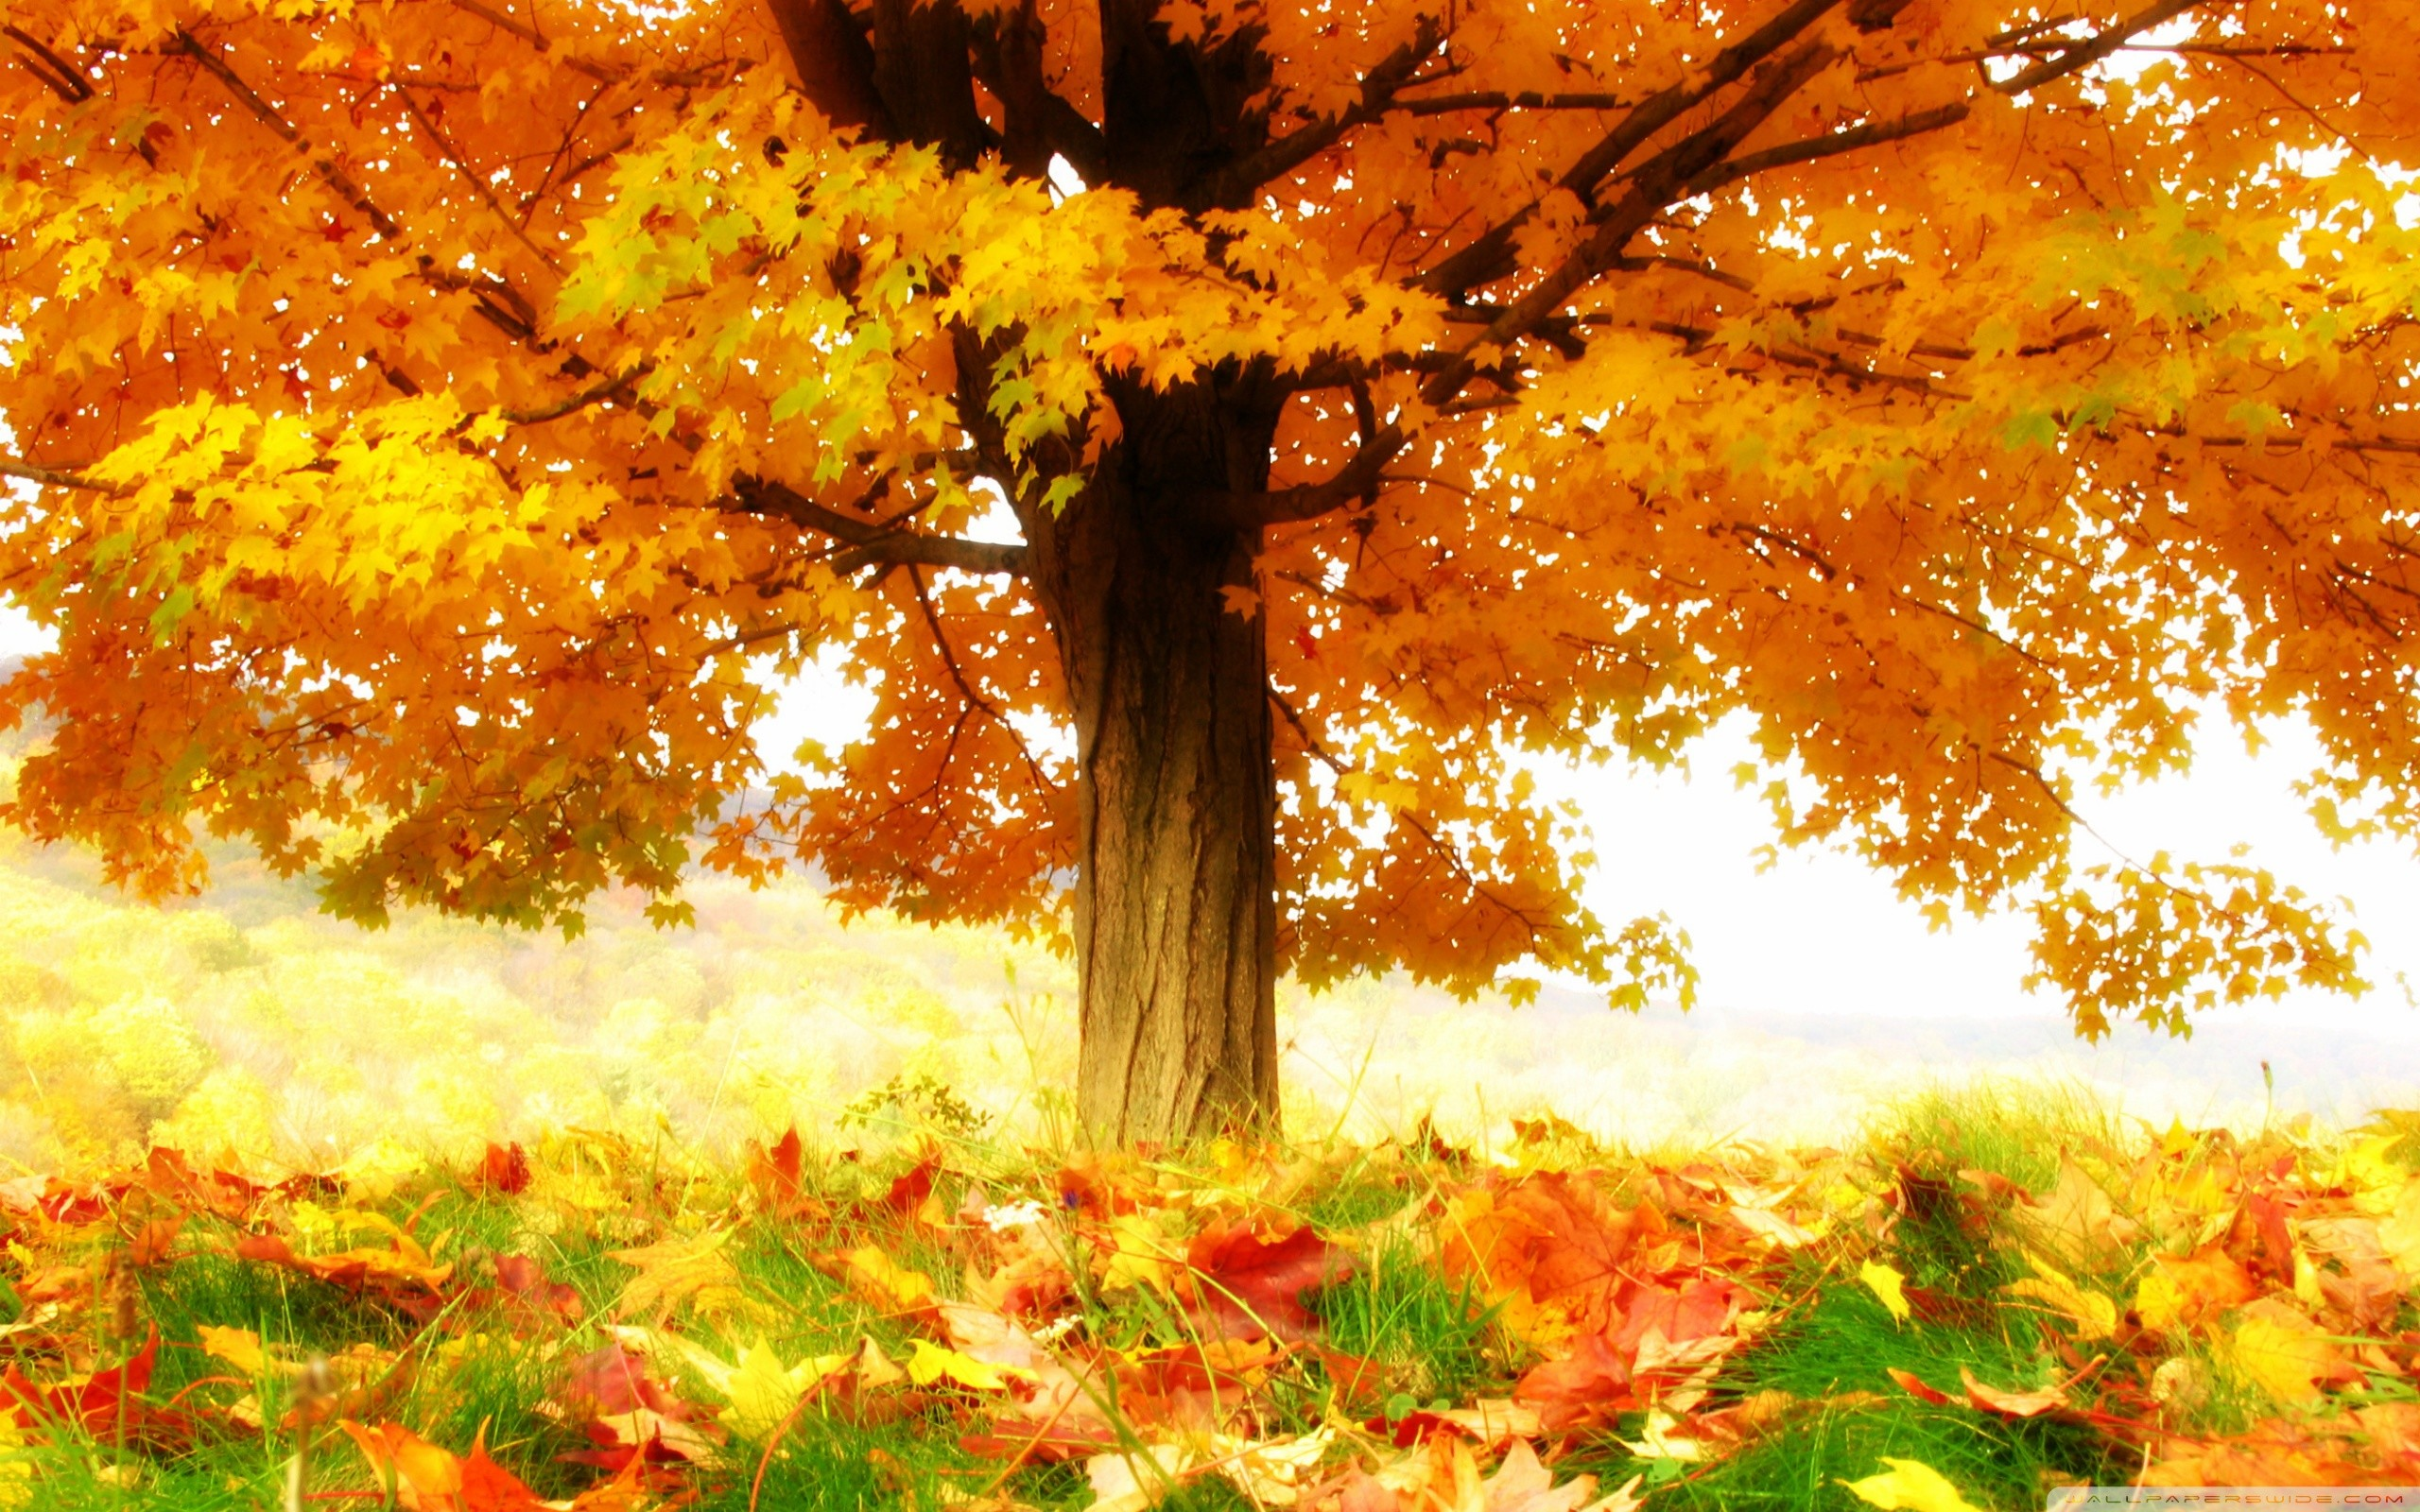 Falling Leaves Wallpaper For Iphone Anime Fall Wallpapers 59 Images